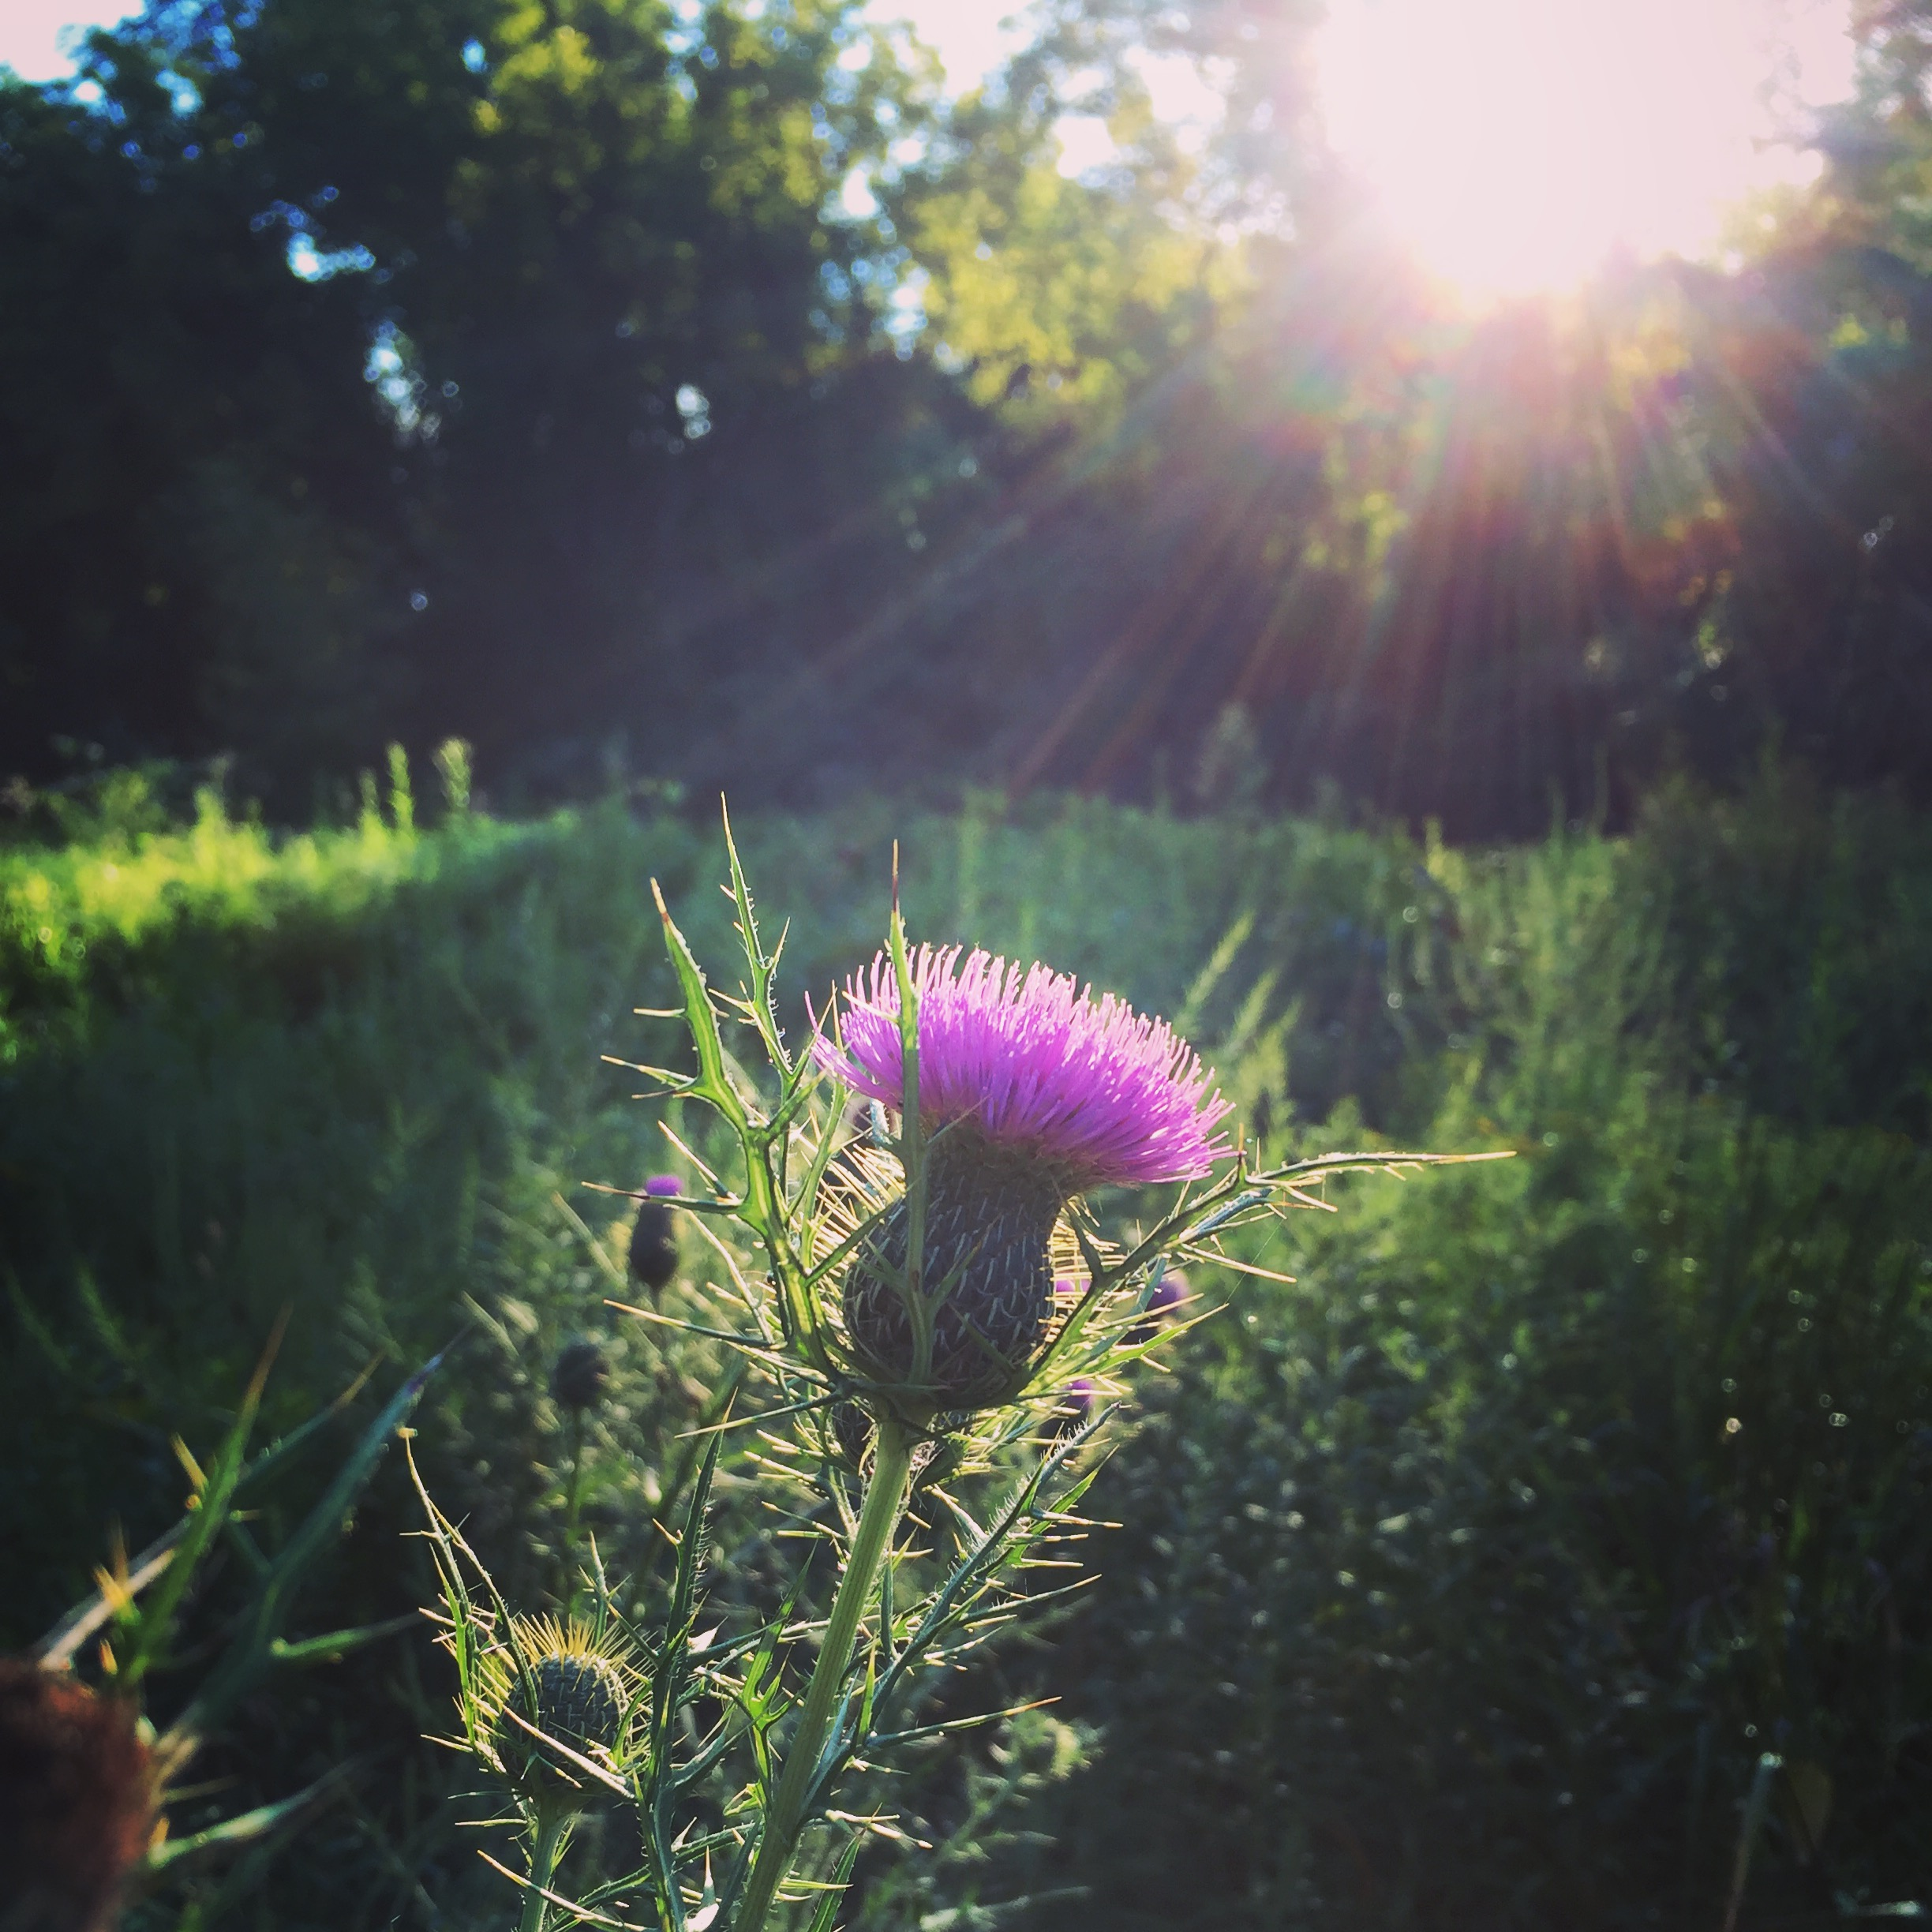 Native Field Thistle awaiting the buzz of pollinator activity in the early morning light at Rushton this August. Photo by Blake Goll/Staff